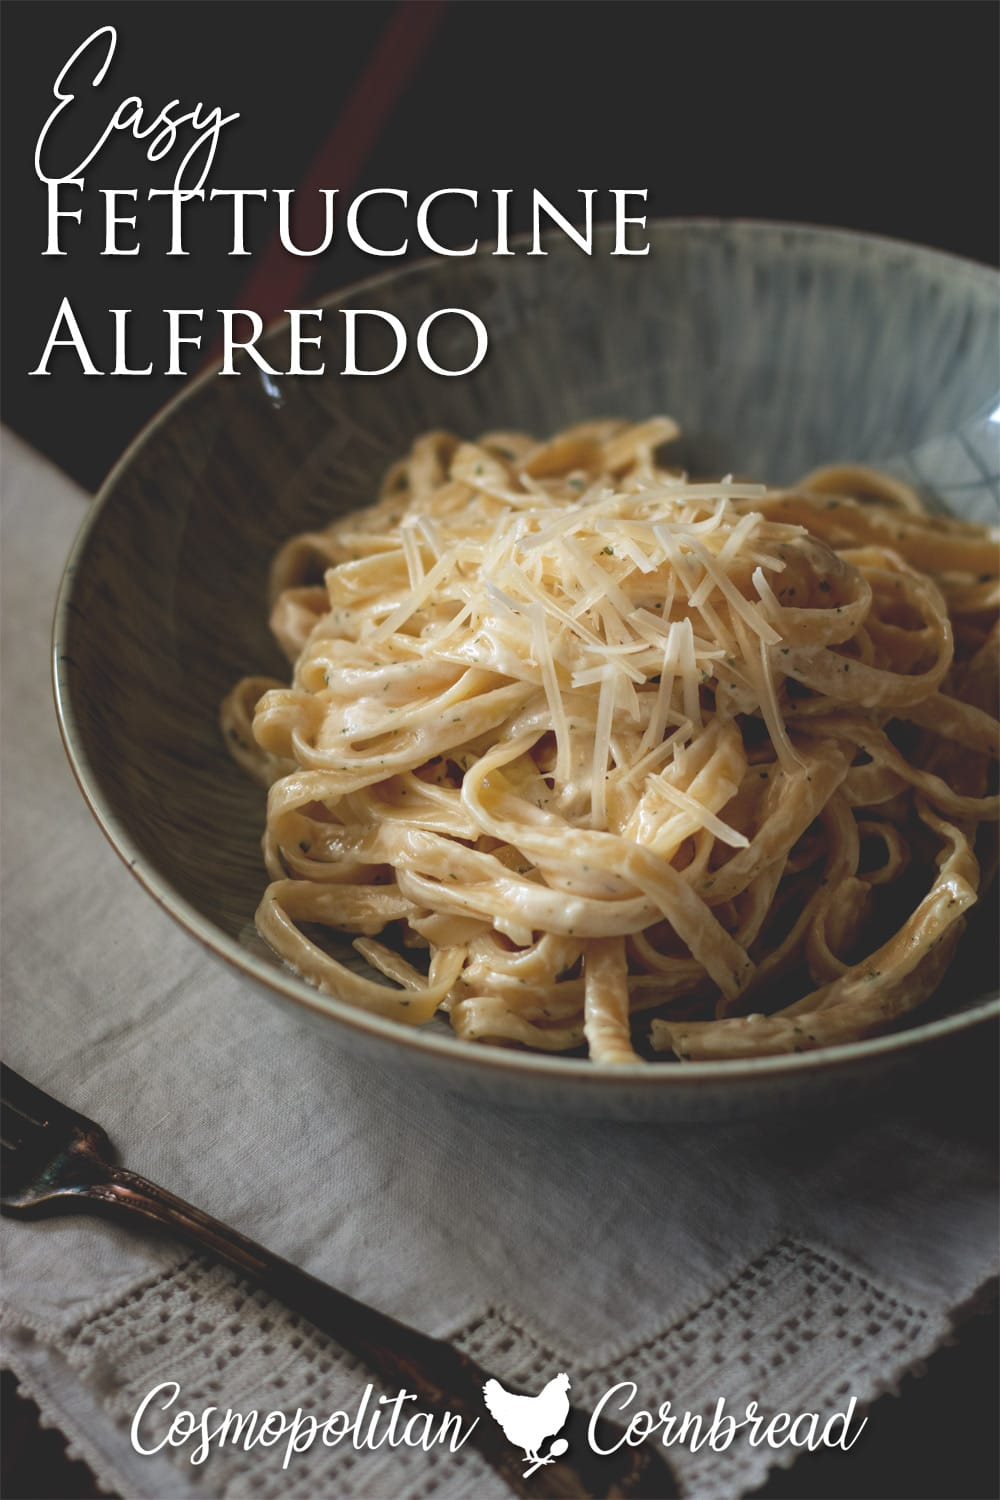 How to make classic and comforting, homemade Fettuccine Alfredo. Get the recipe from Cosmopolitan Cornbread.